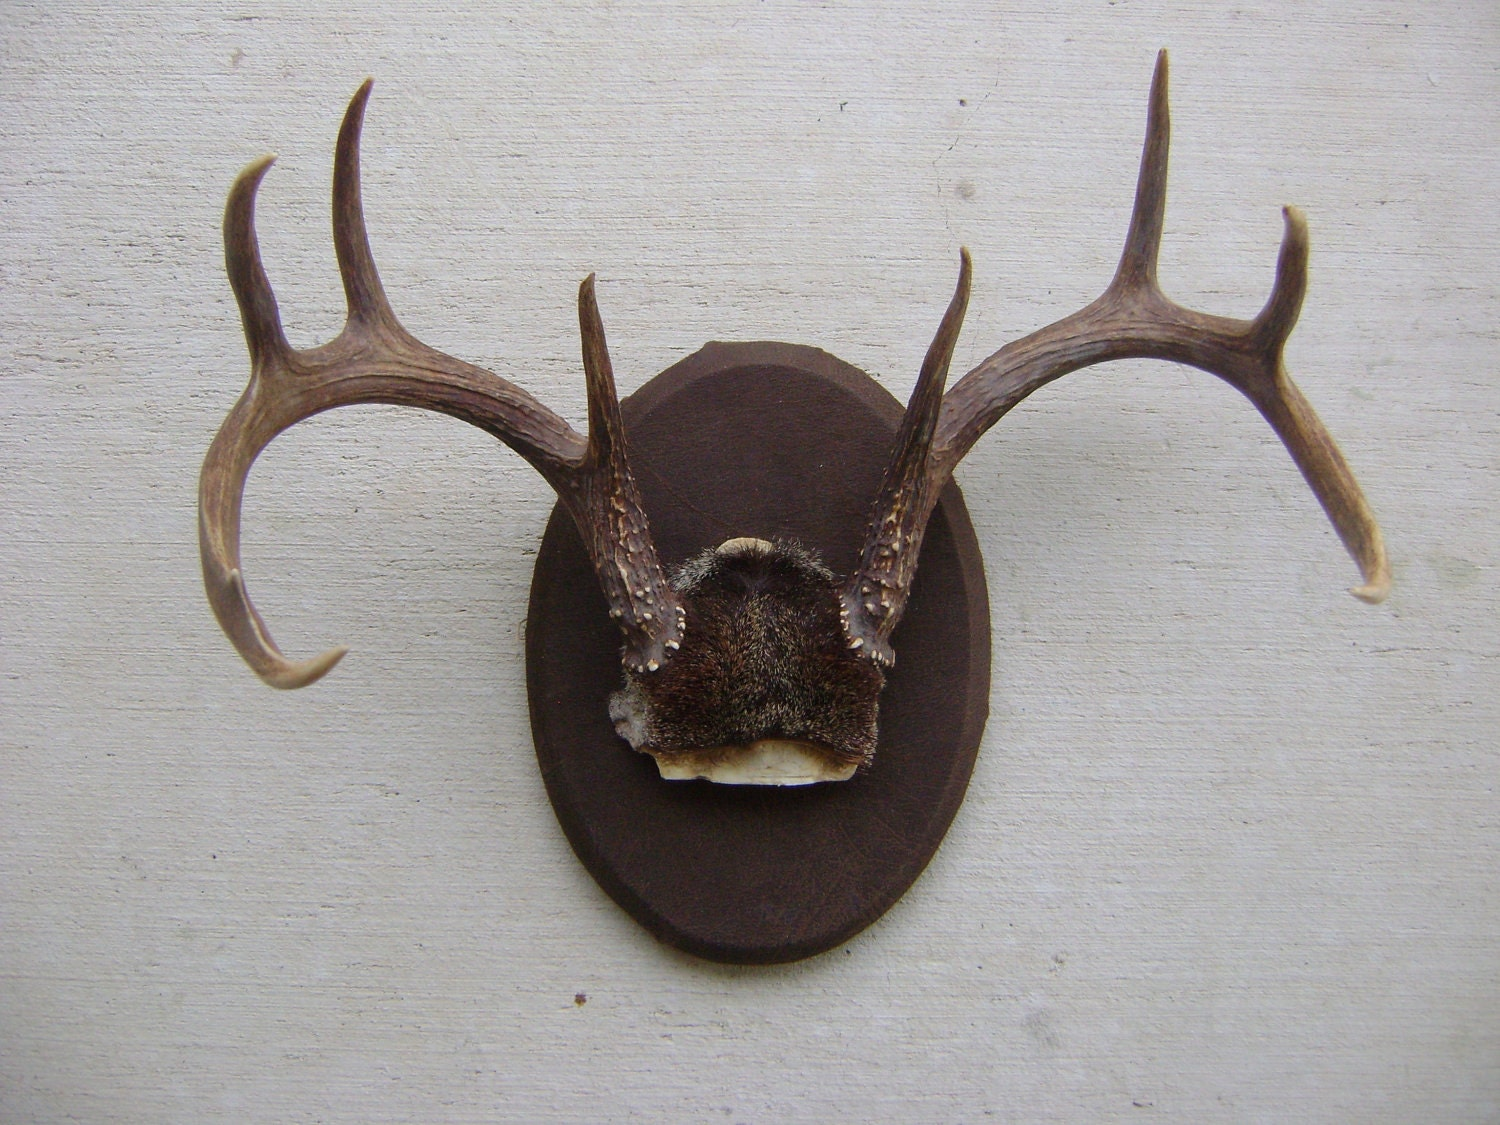 Antler Wall Decor Woodland Deer Antlers Rustic Wall Decor Man Cave Holiday Decor